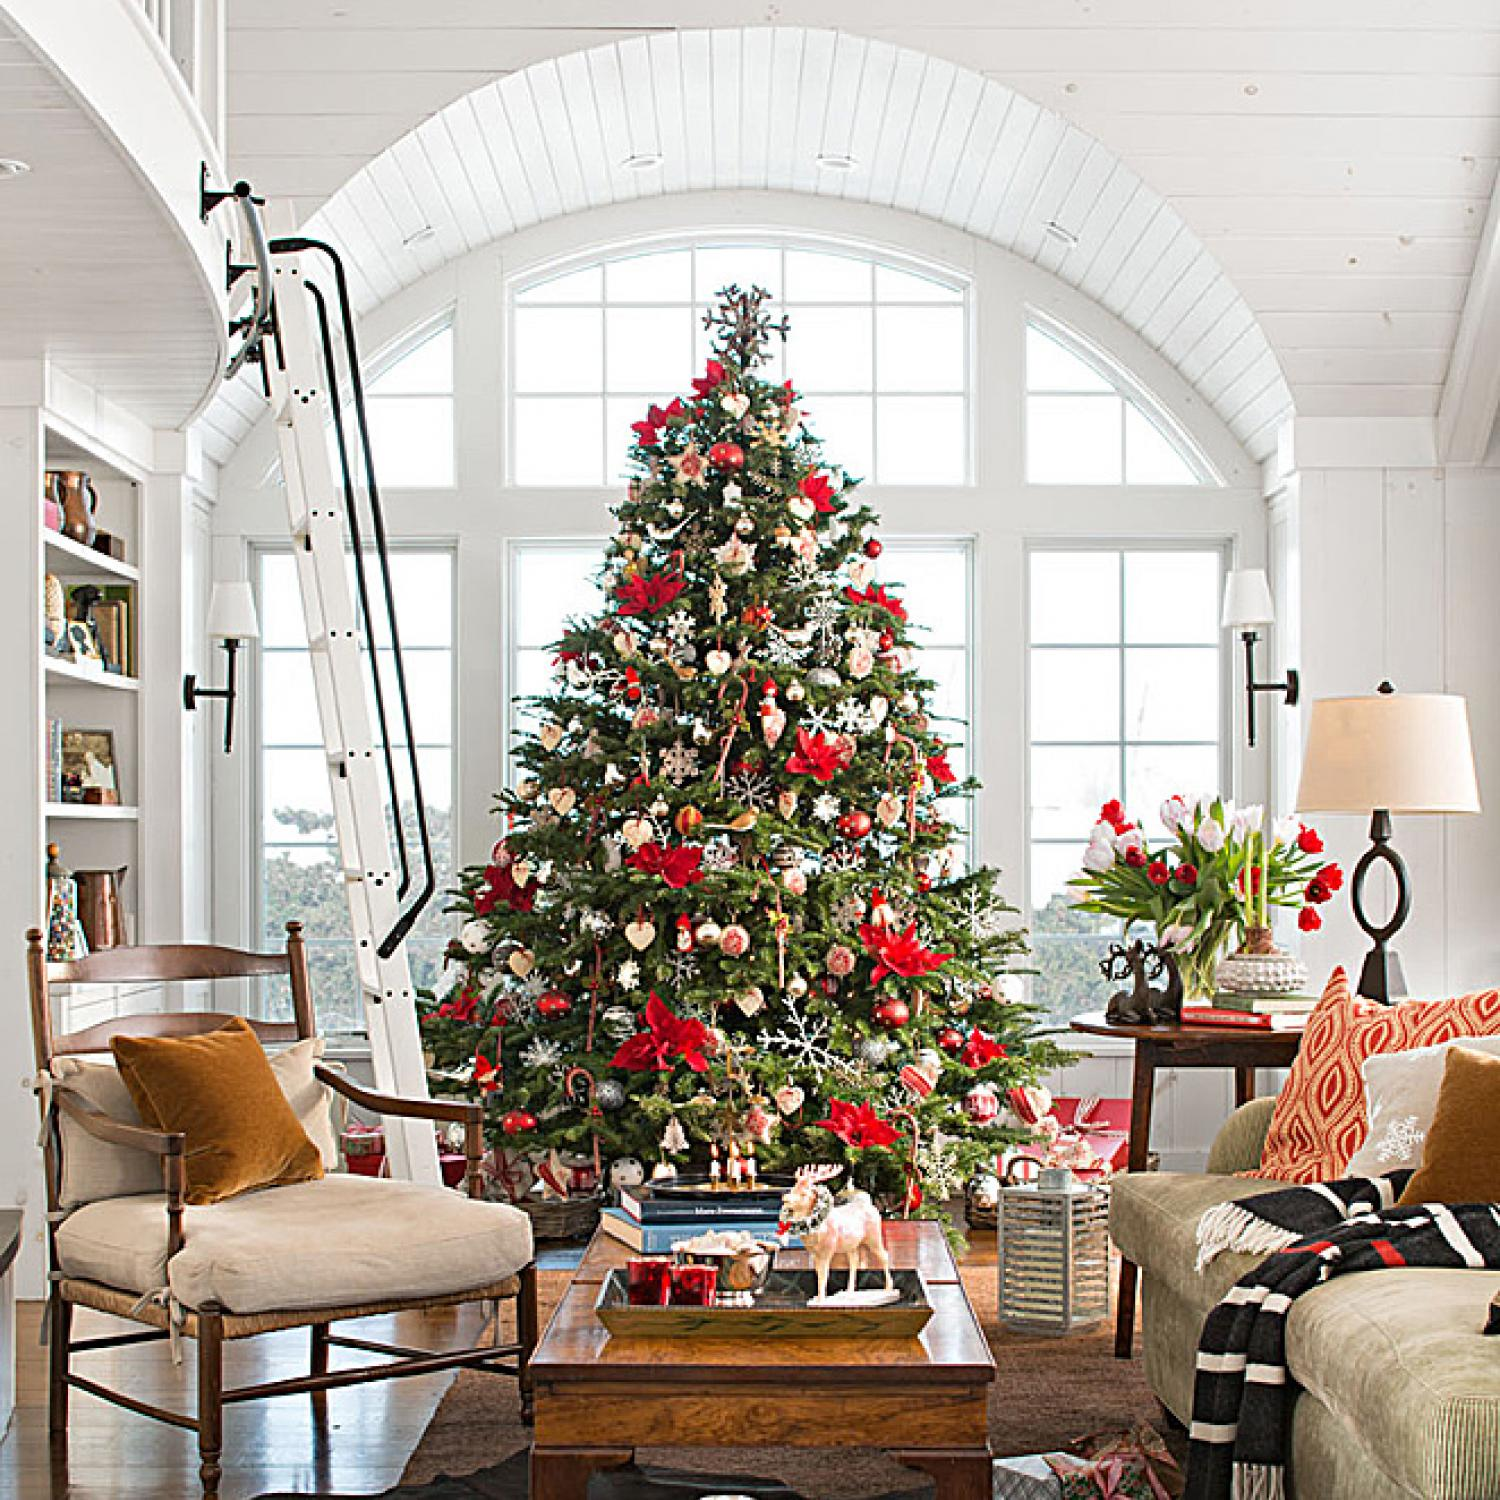 Snowy vermont home ready for christmas traditional home for Christmas home ideas